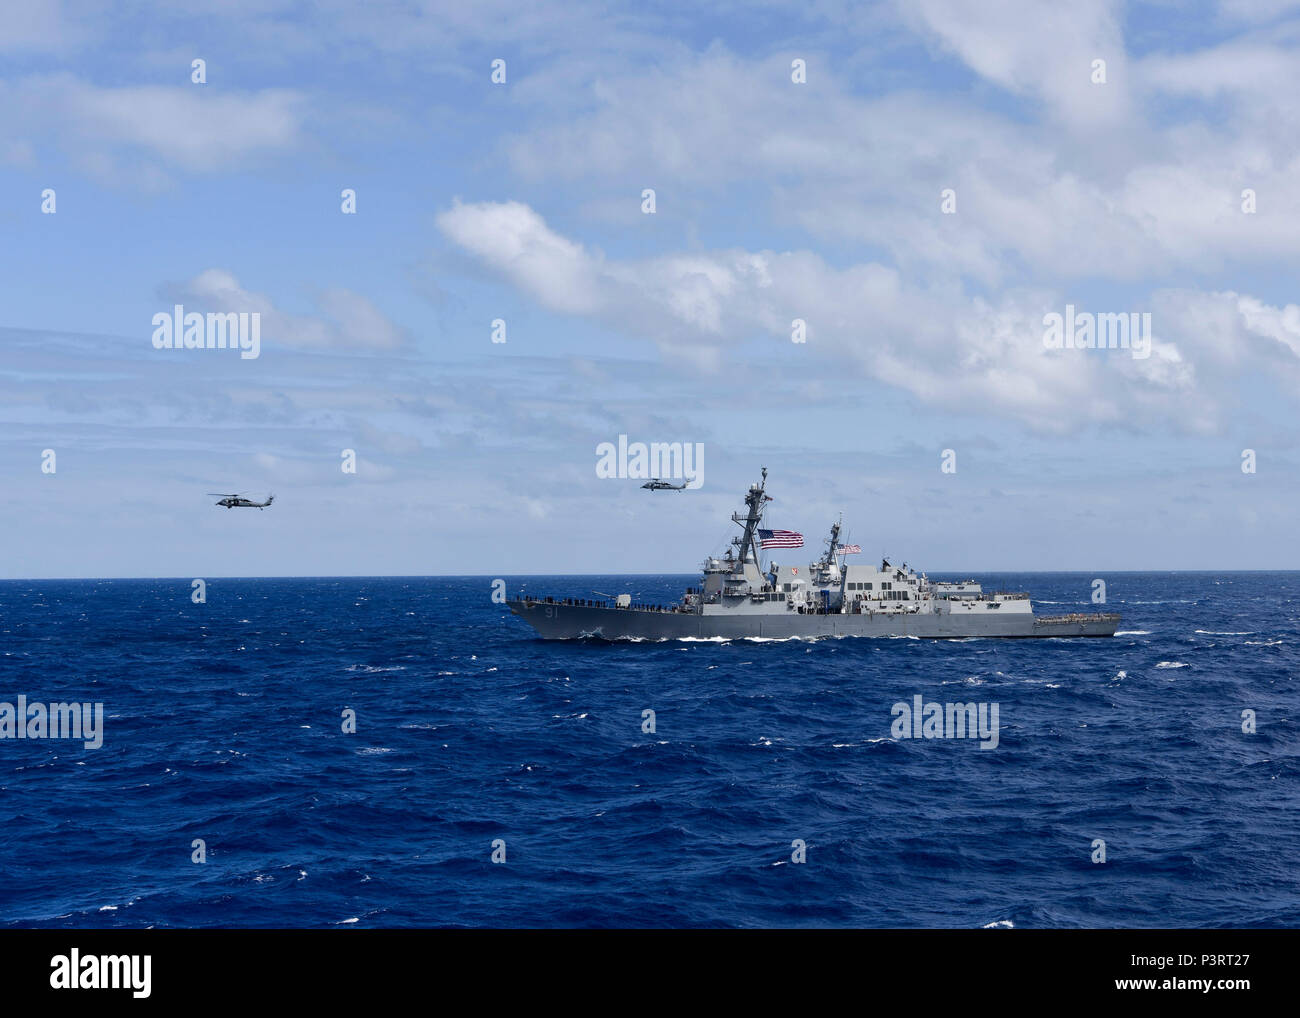 160728-N-KR702-144 PACIFIC OCEAN (June 28, 2016) – Two MH-60S Sea Hawk  helicopters fly over the Arleigh Burke-class guided-missile destroyer USS  Pinckney ...